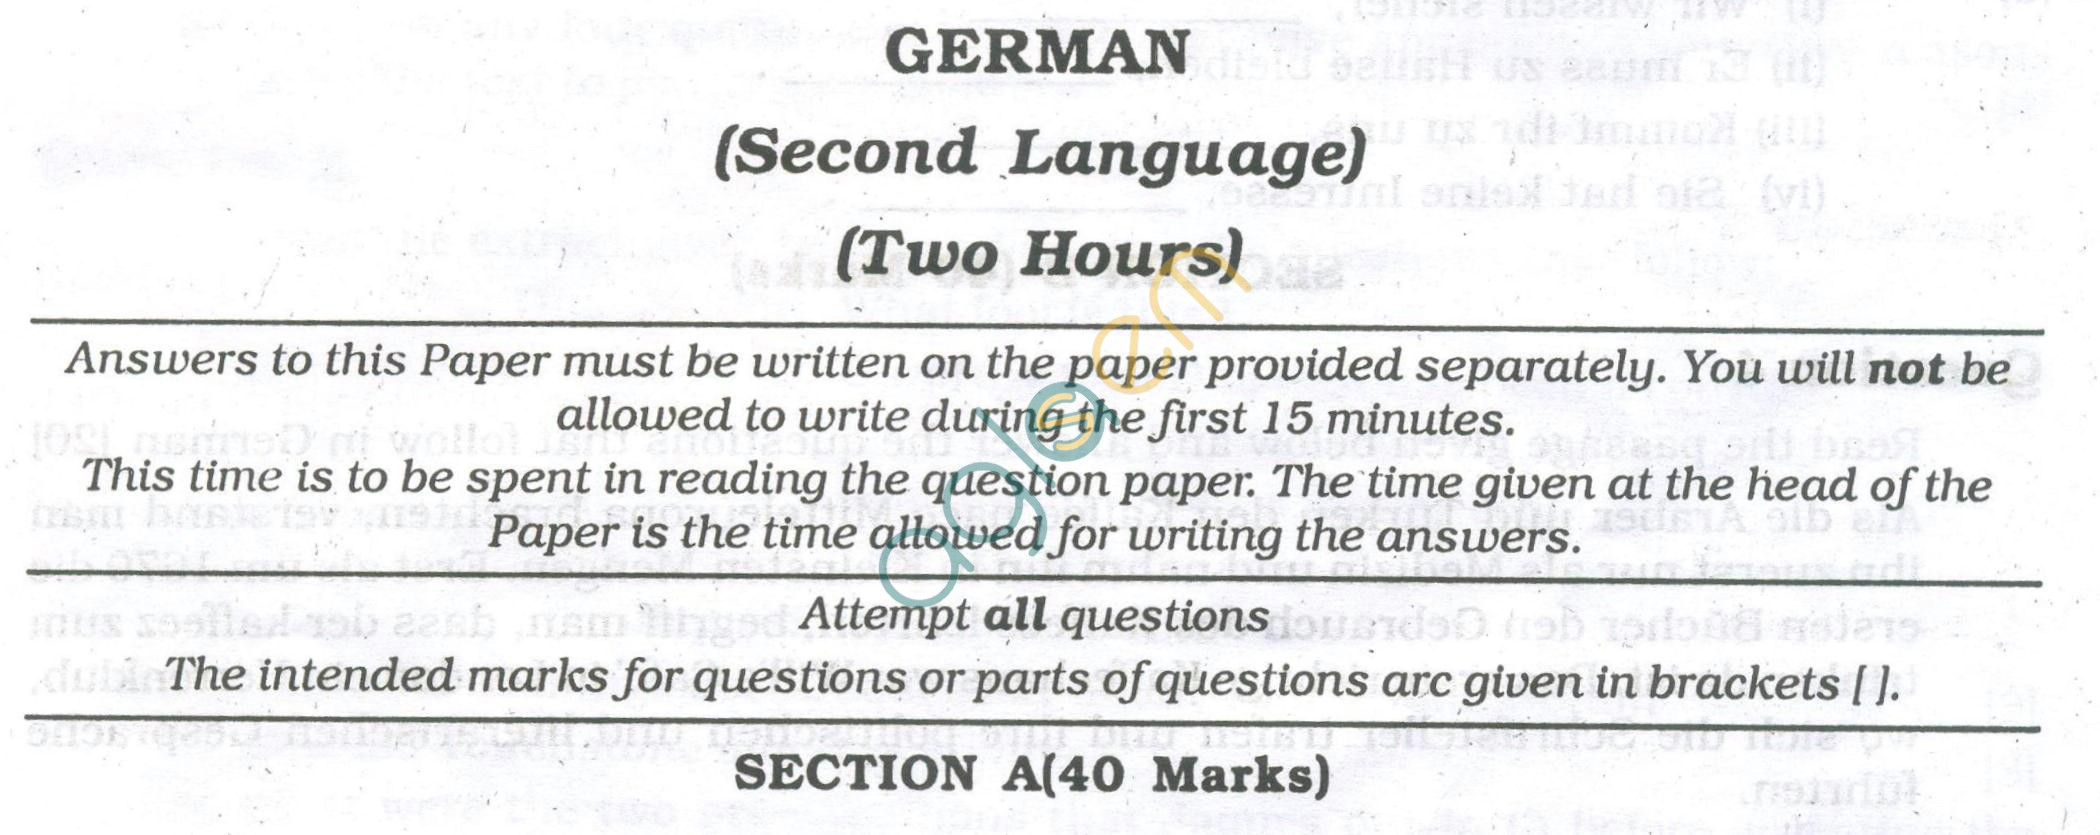 ICSE Question Papers 2013 for Class 10 - German